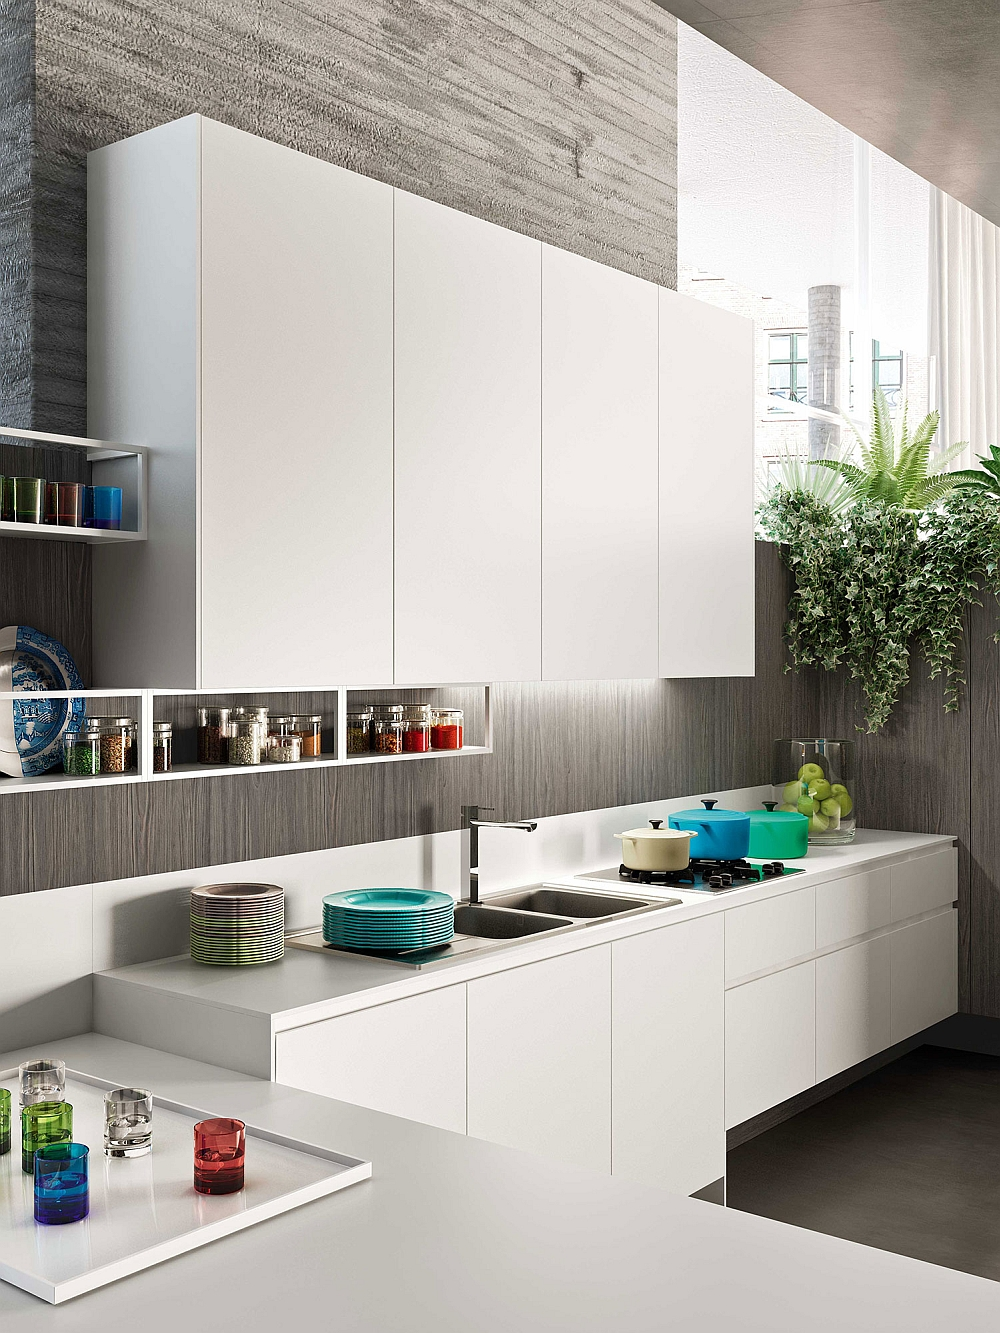 White wall-mounted cabinets make use of vertical space in the kitchen